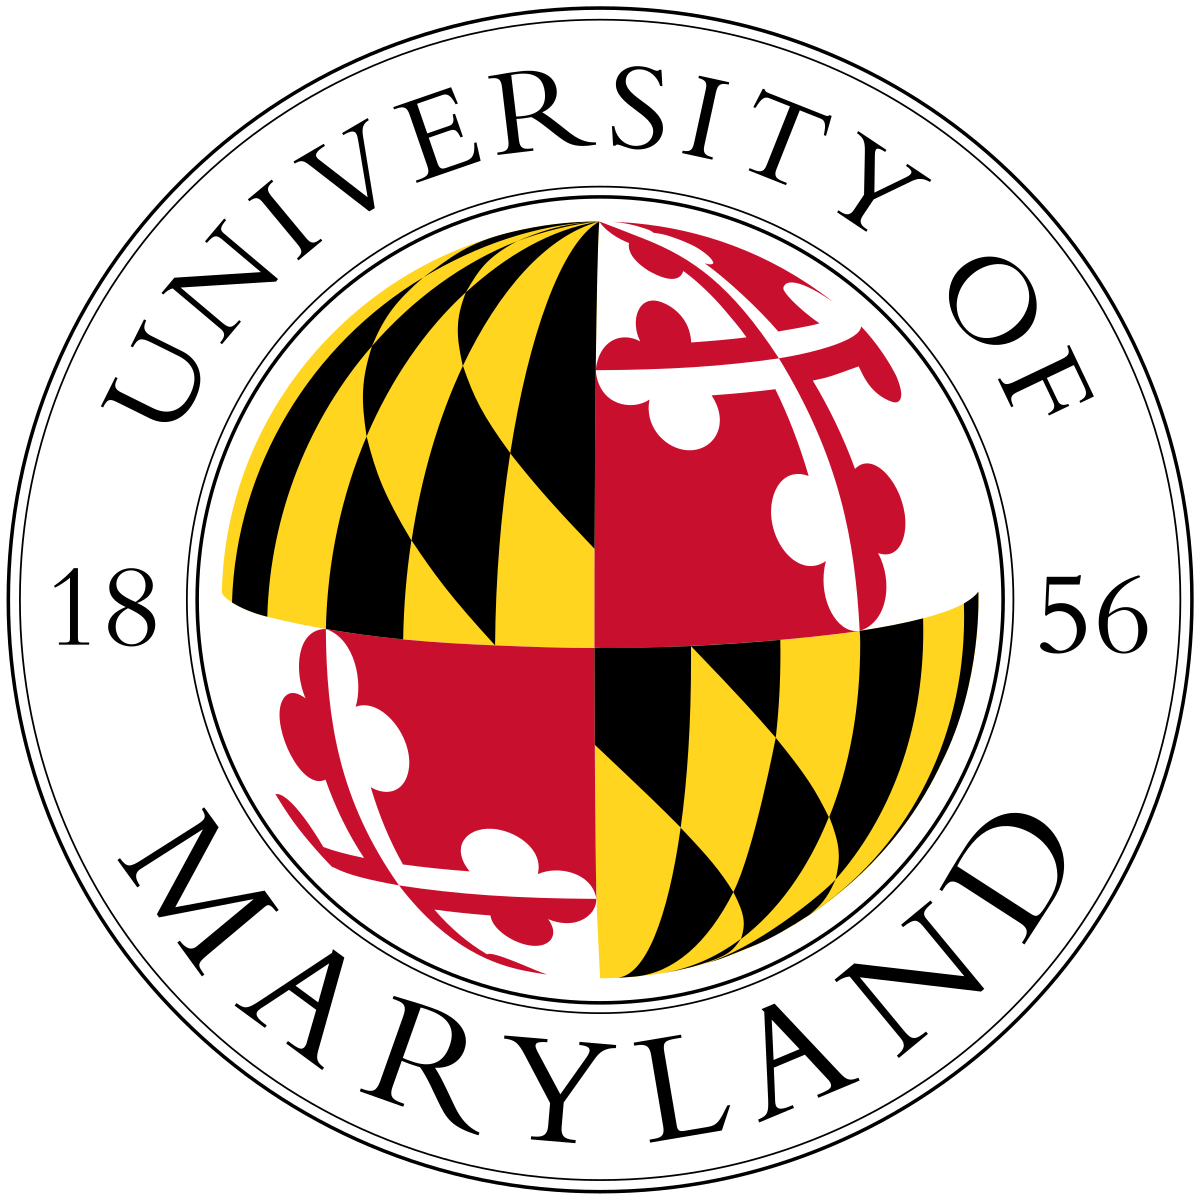 University of Maryland, Joint Program in Survey Methodology